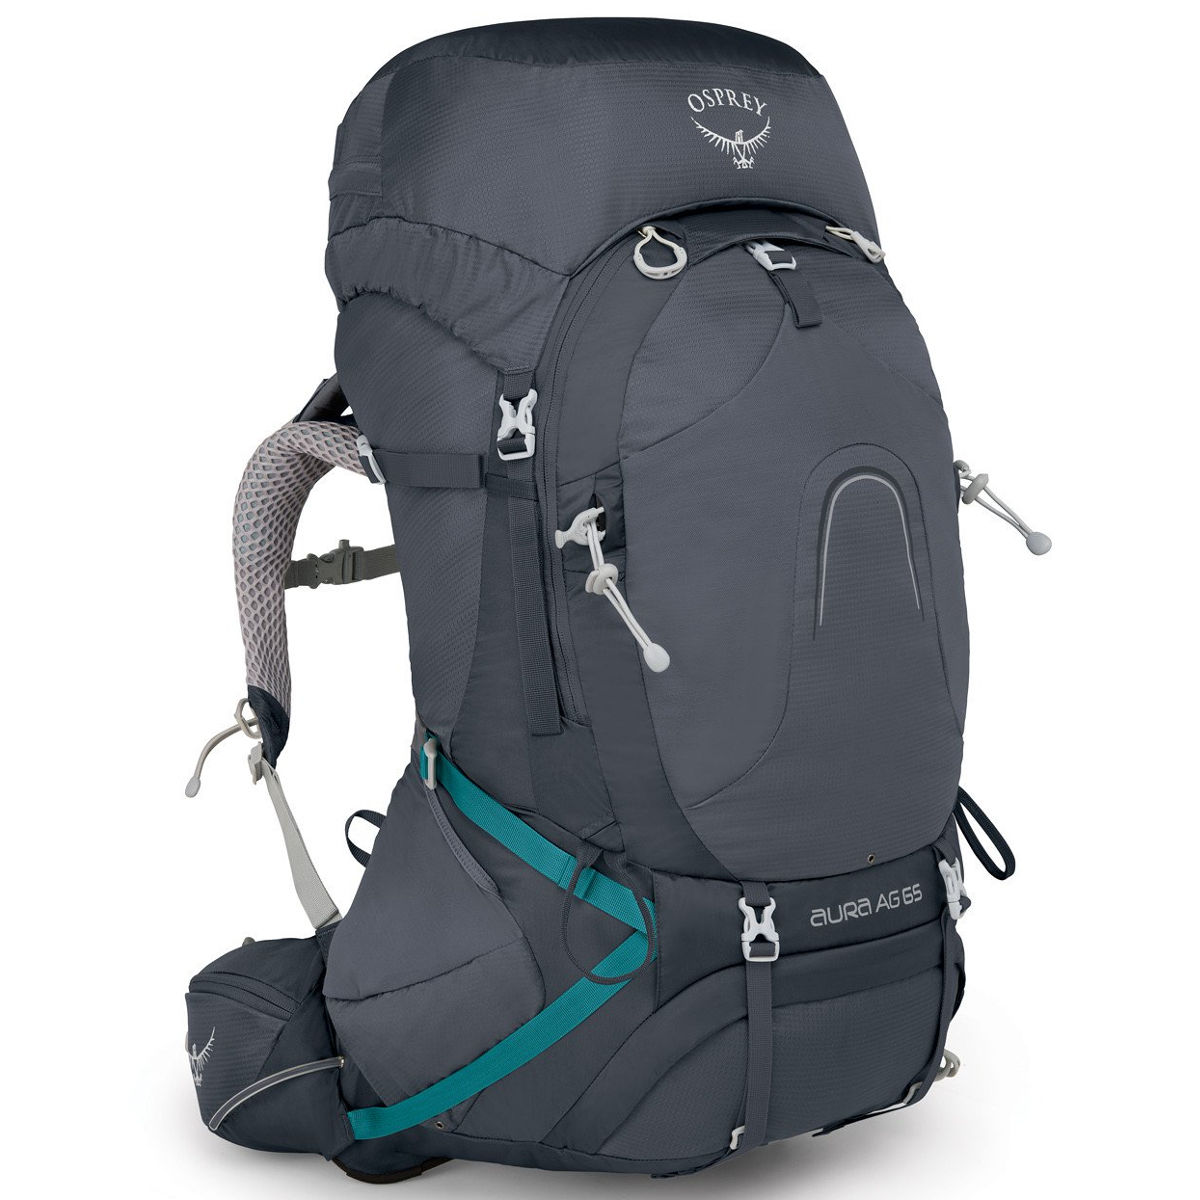 photo: Osprey Aura AG 65 weekend pack (50-69l)